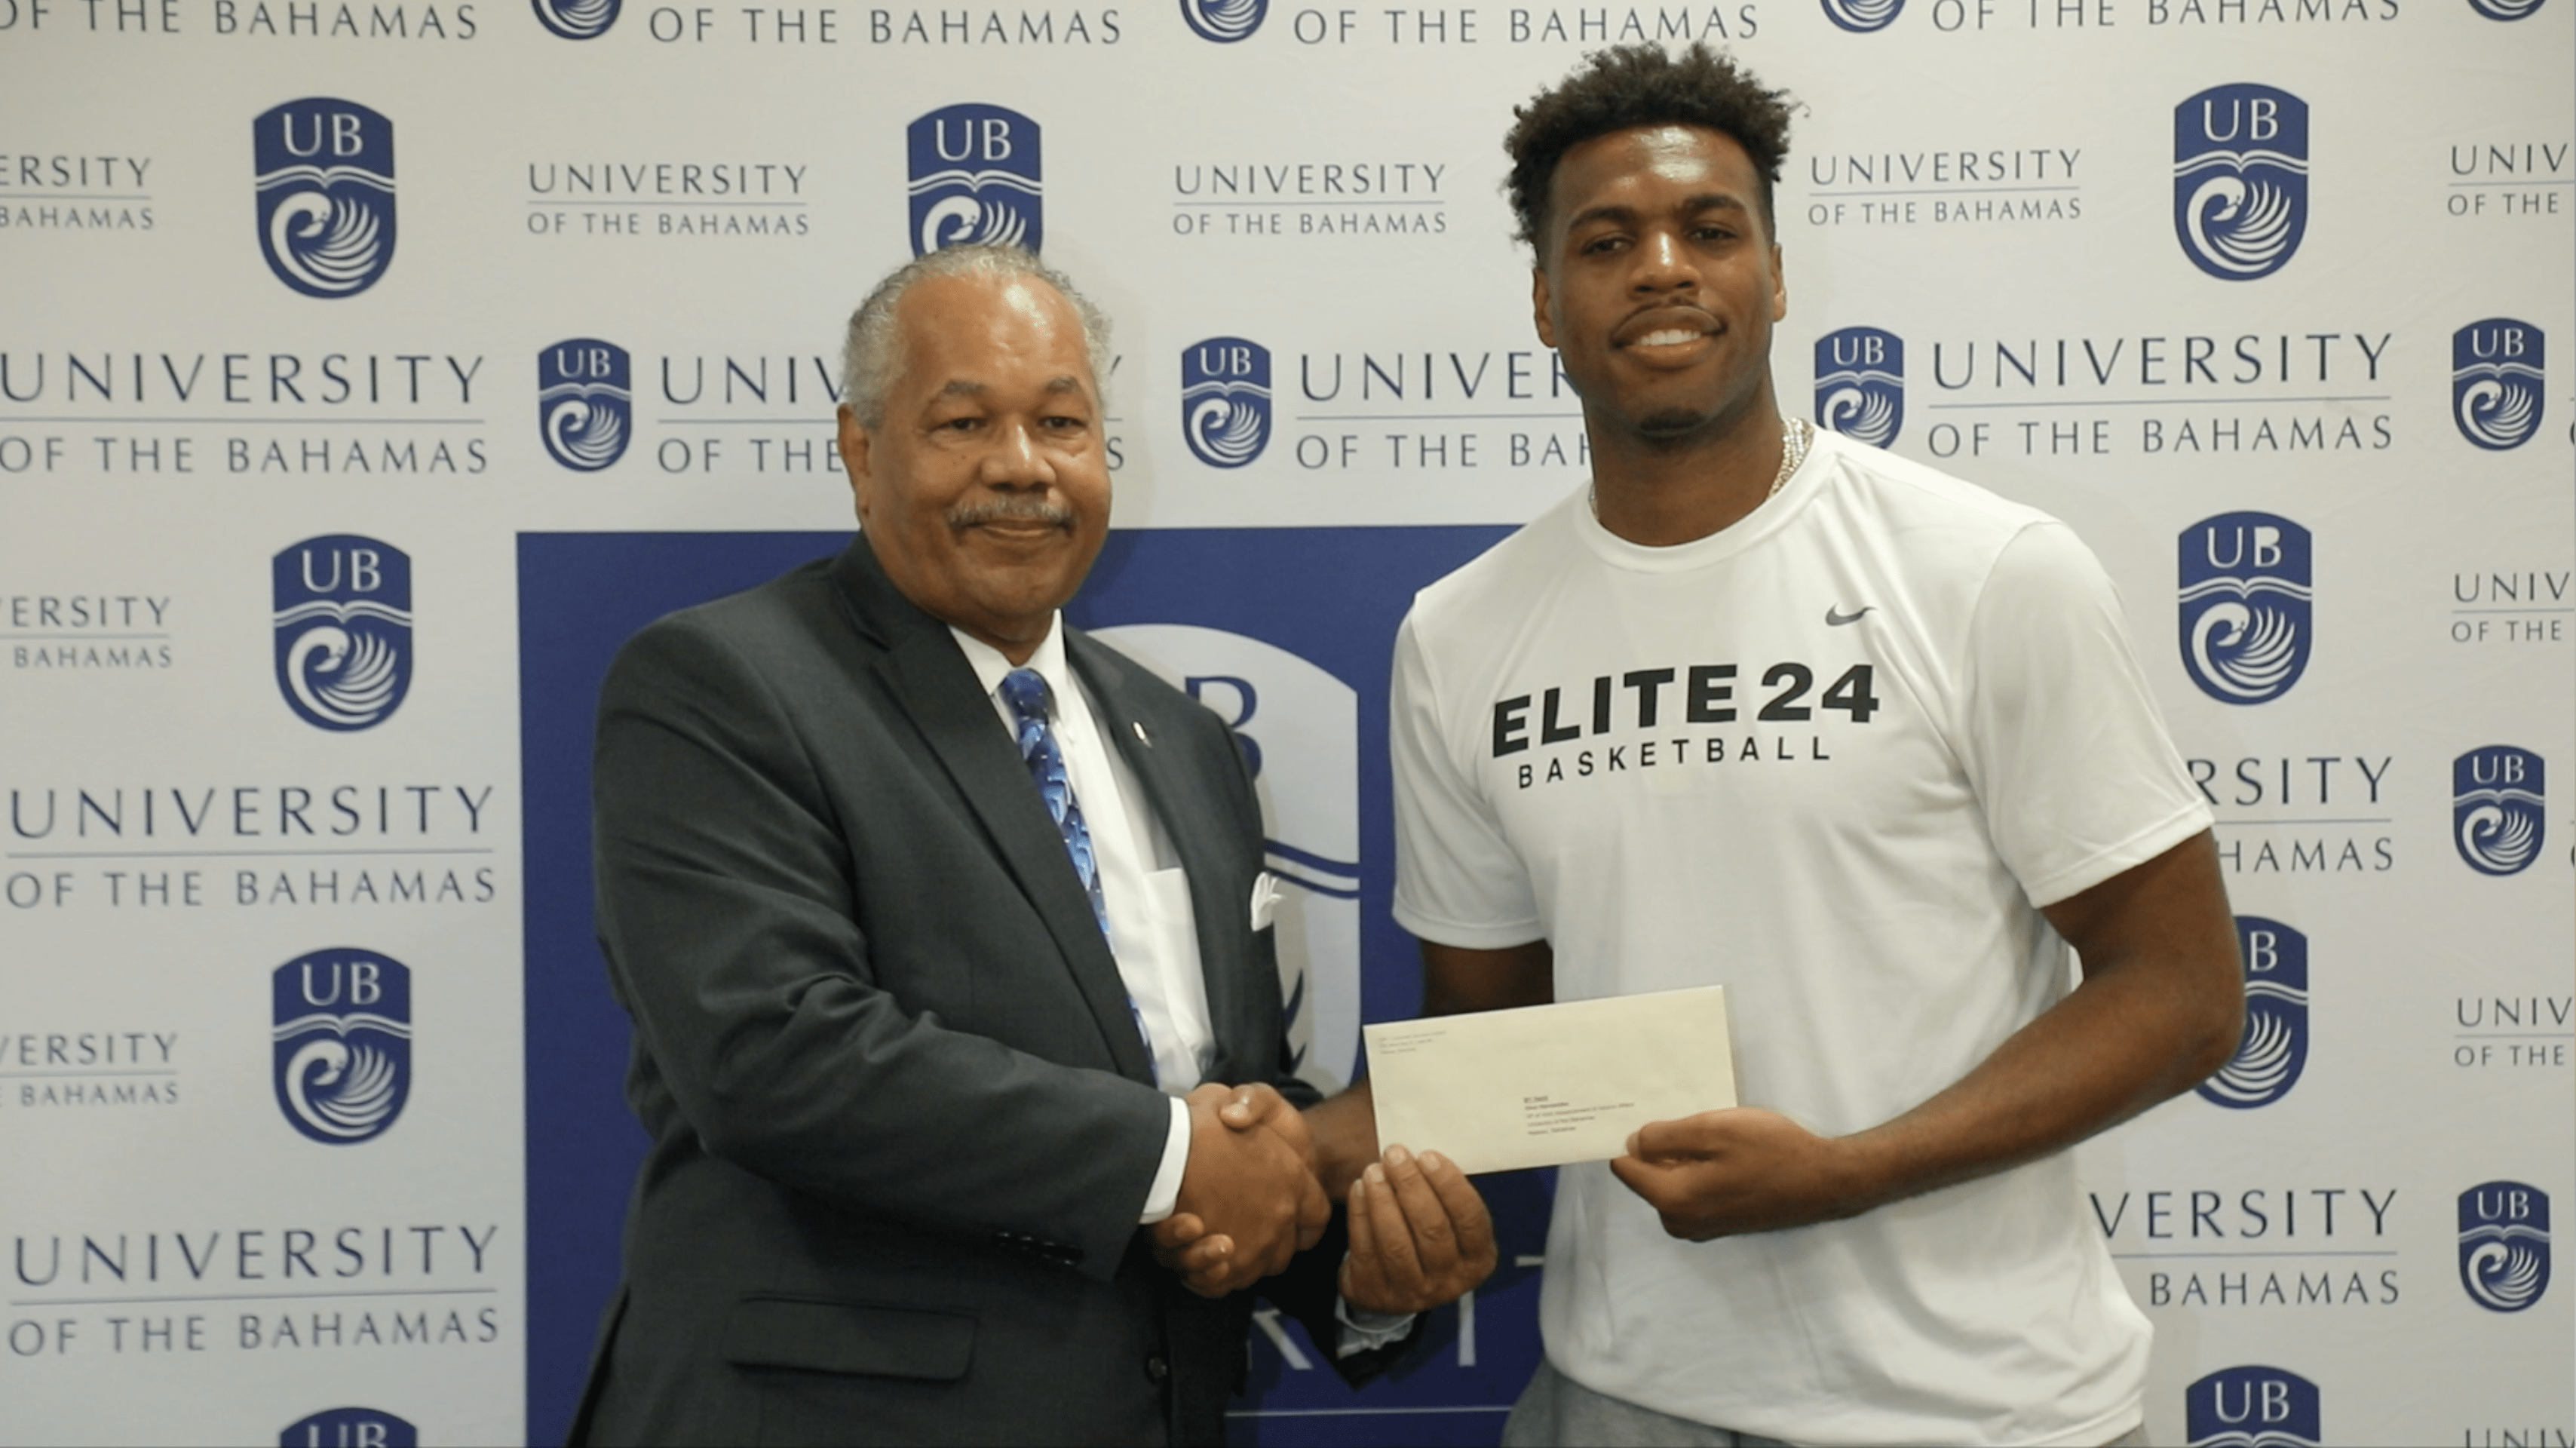 Elite 24 camp offering full ride to UB for MVP